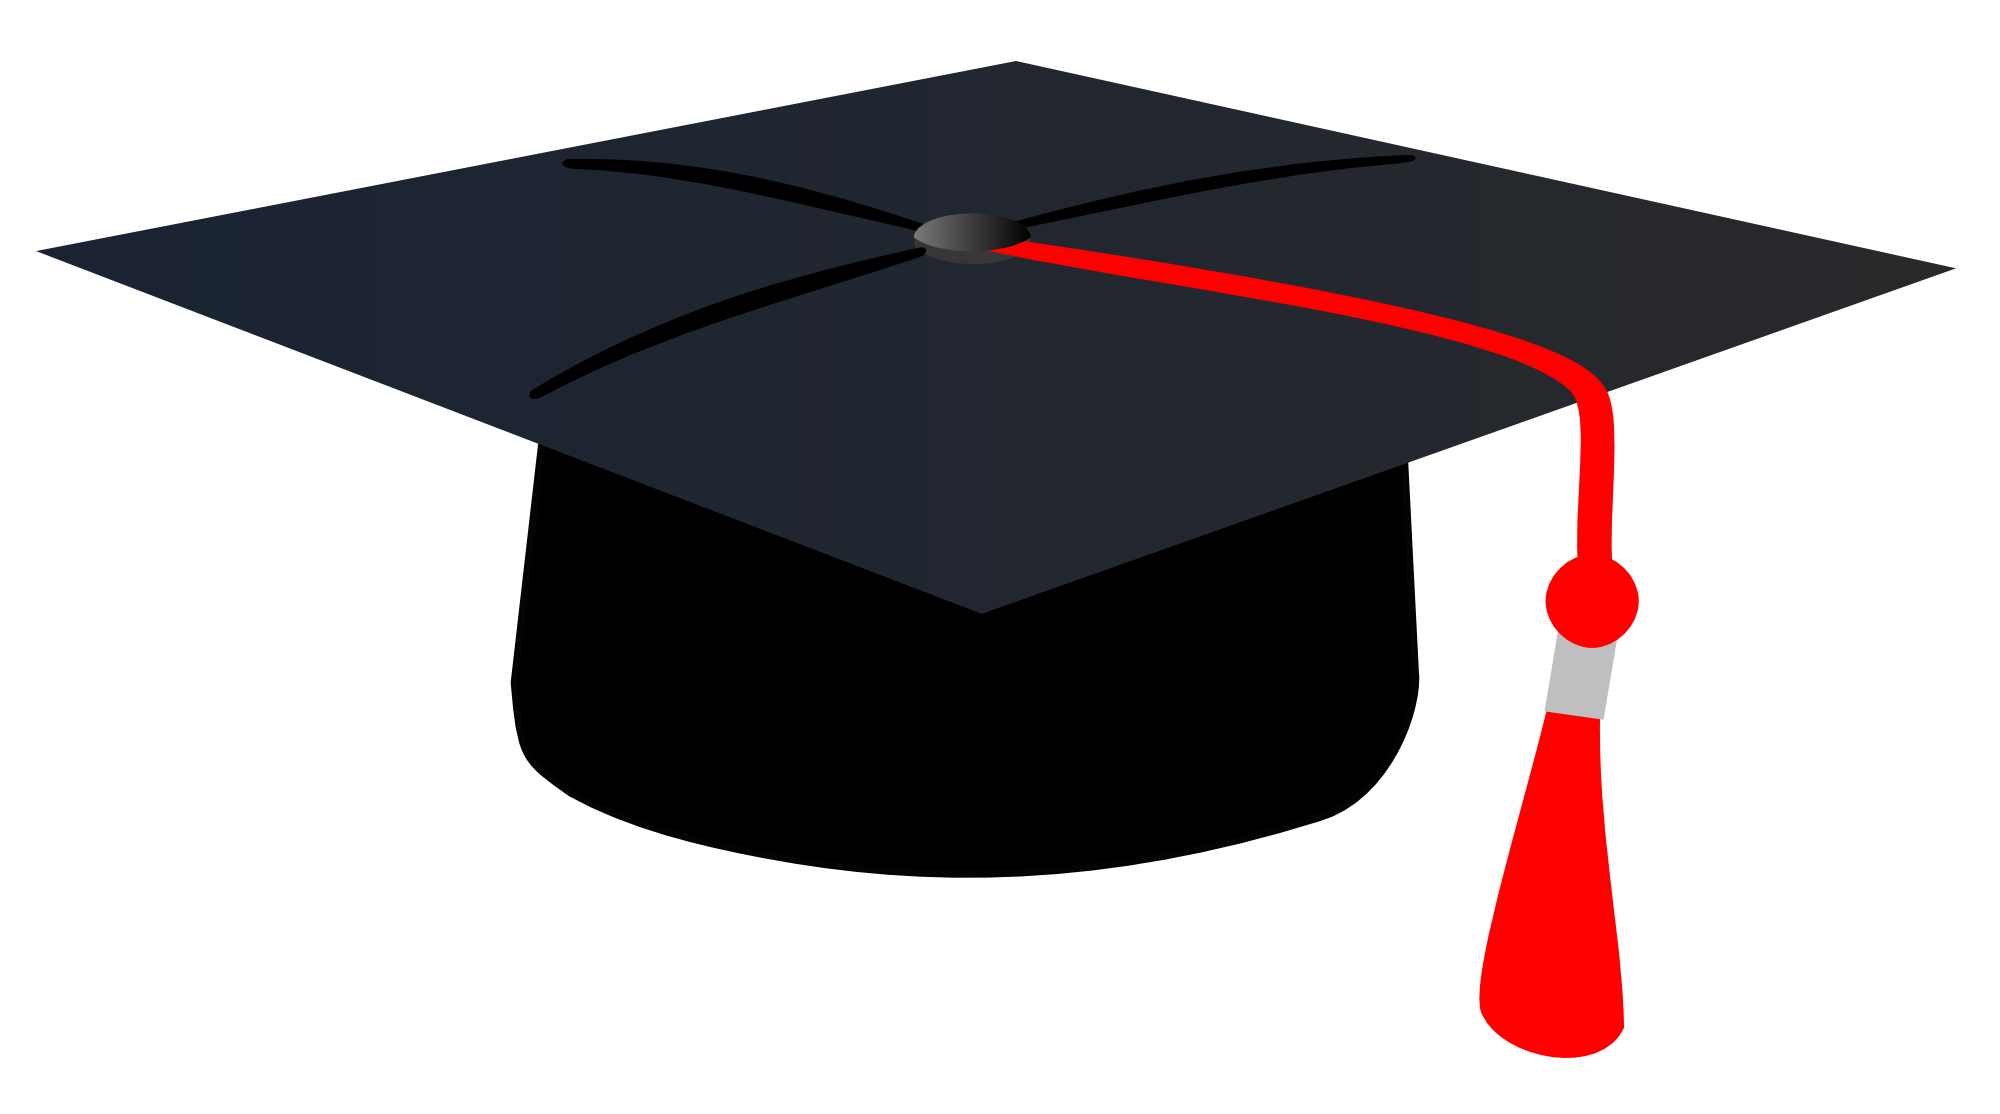 Resolution: 2000 x 1114 | Format: PNG | Keywords: Hat, Cap, Student,  School, Graduation, Mortarboard, Education, University, Object, Degree,  Diploma, PlusPng.com  - Degree Cap PNG